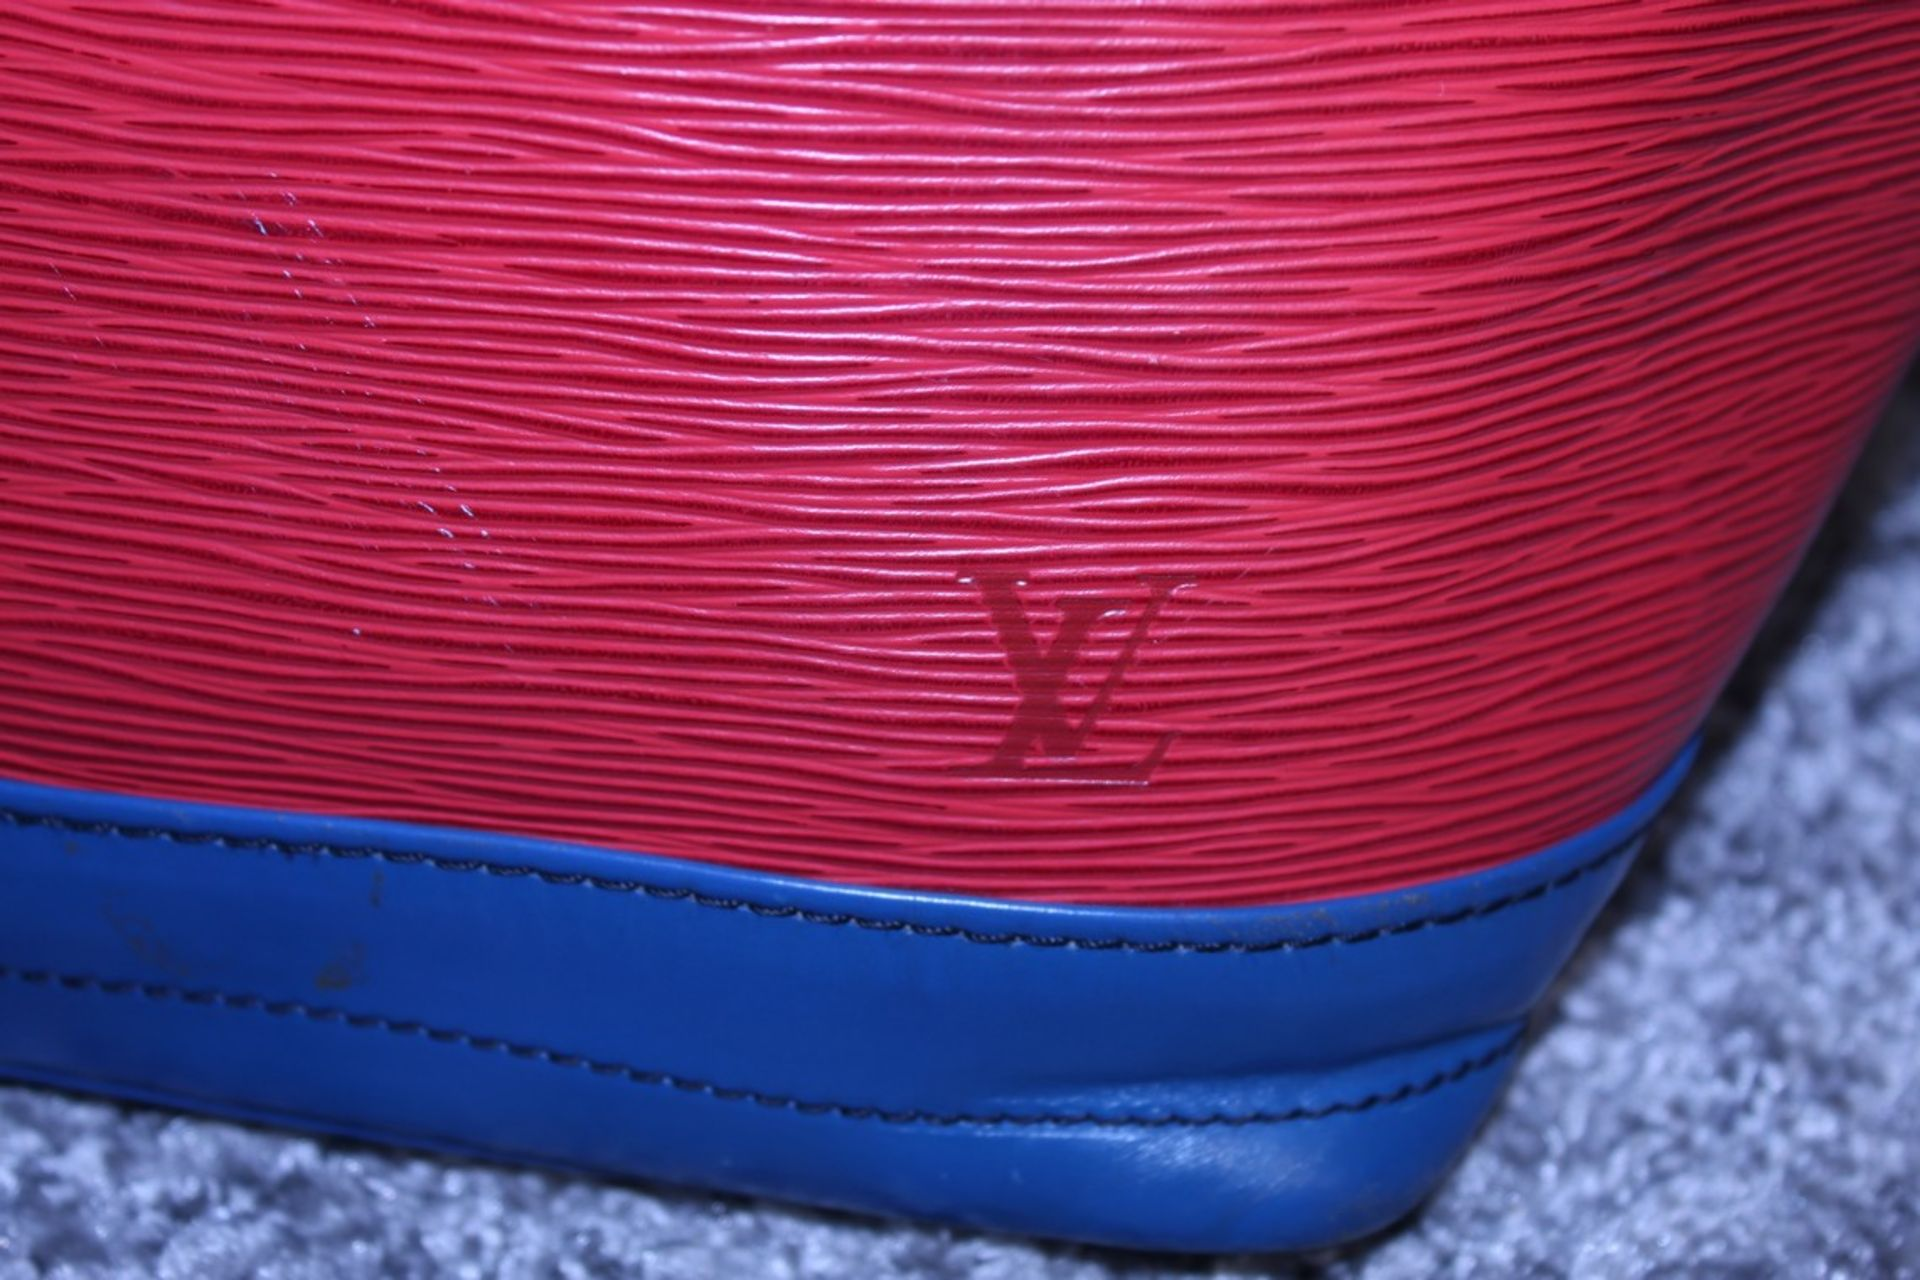 RRP £1,200 Noe Tricolor Shoulder Bag, Red/Blue/Green Epi Claf Leather With Black Stitching - Image 3 of 3